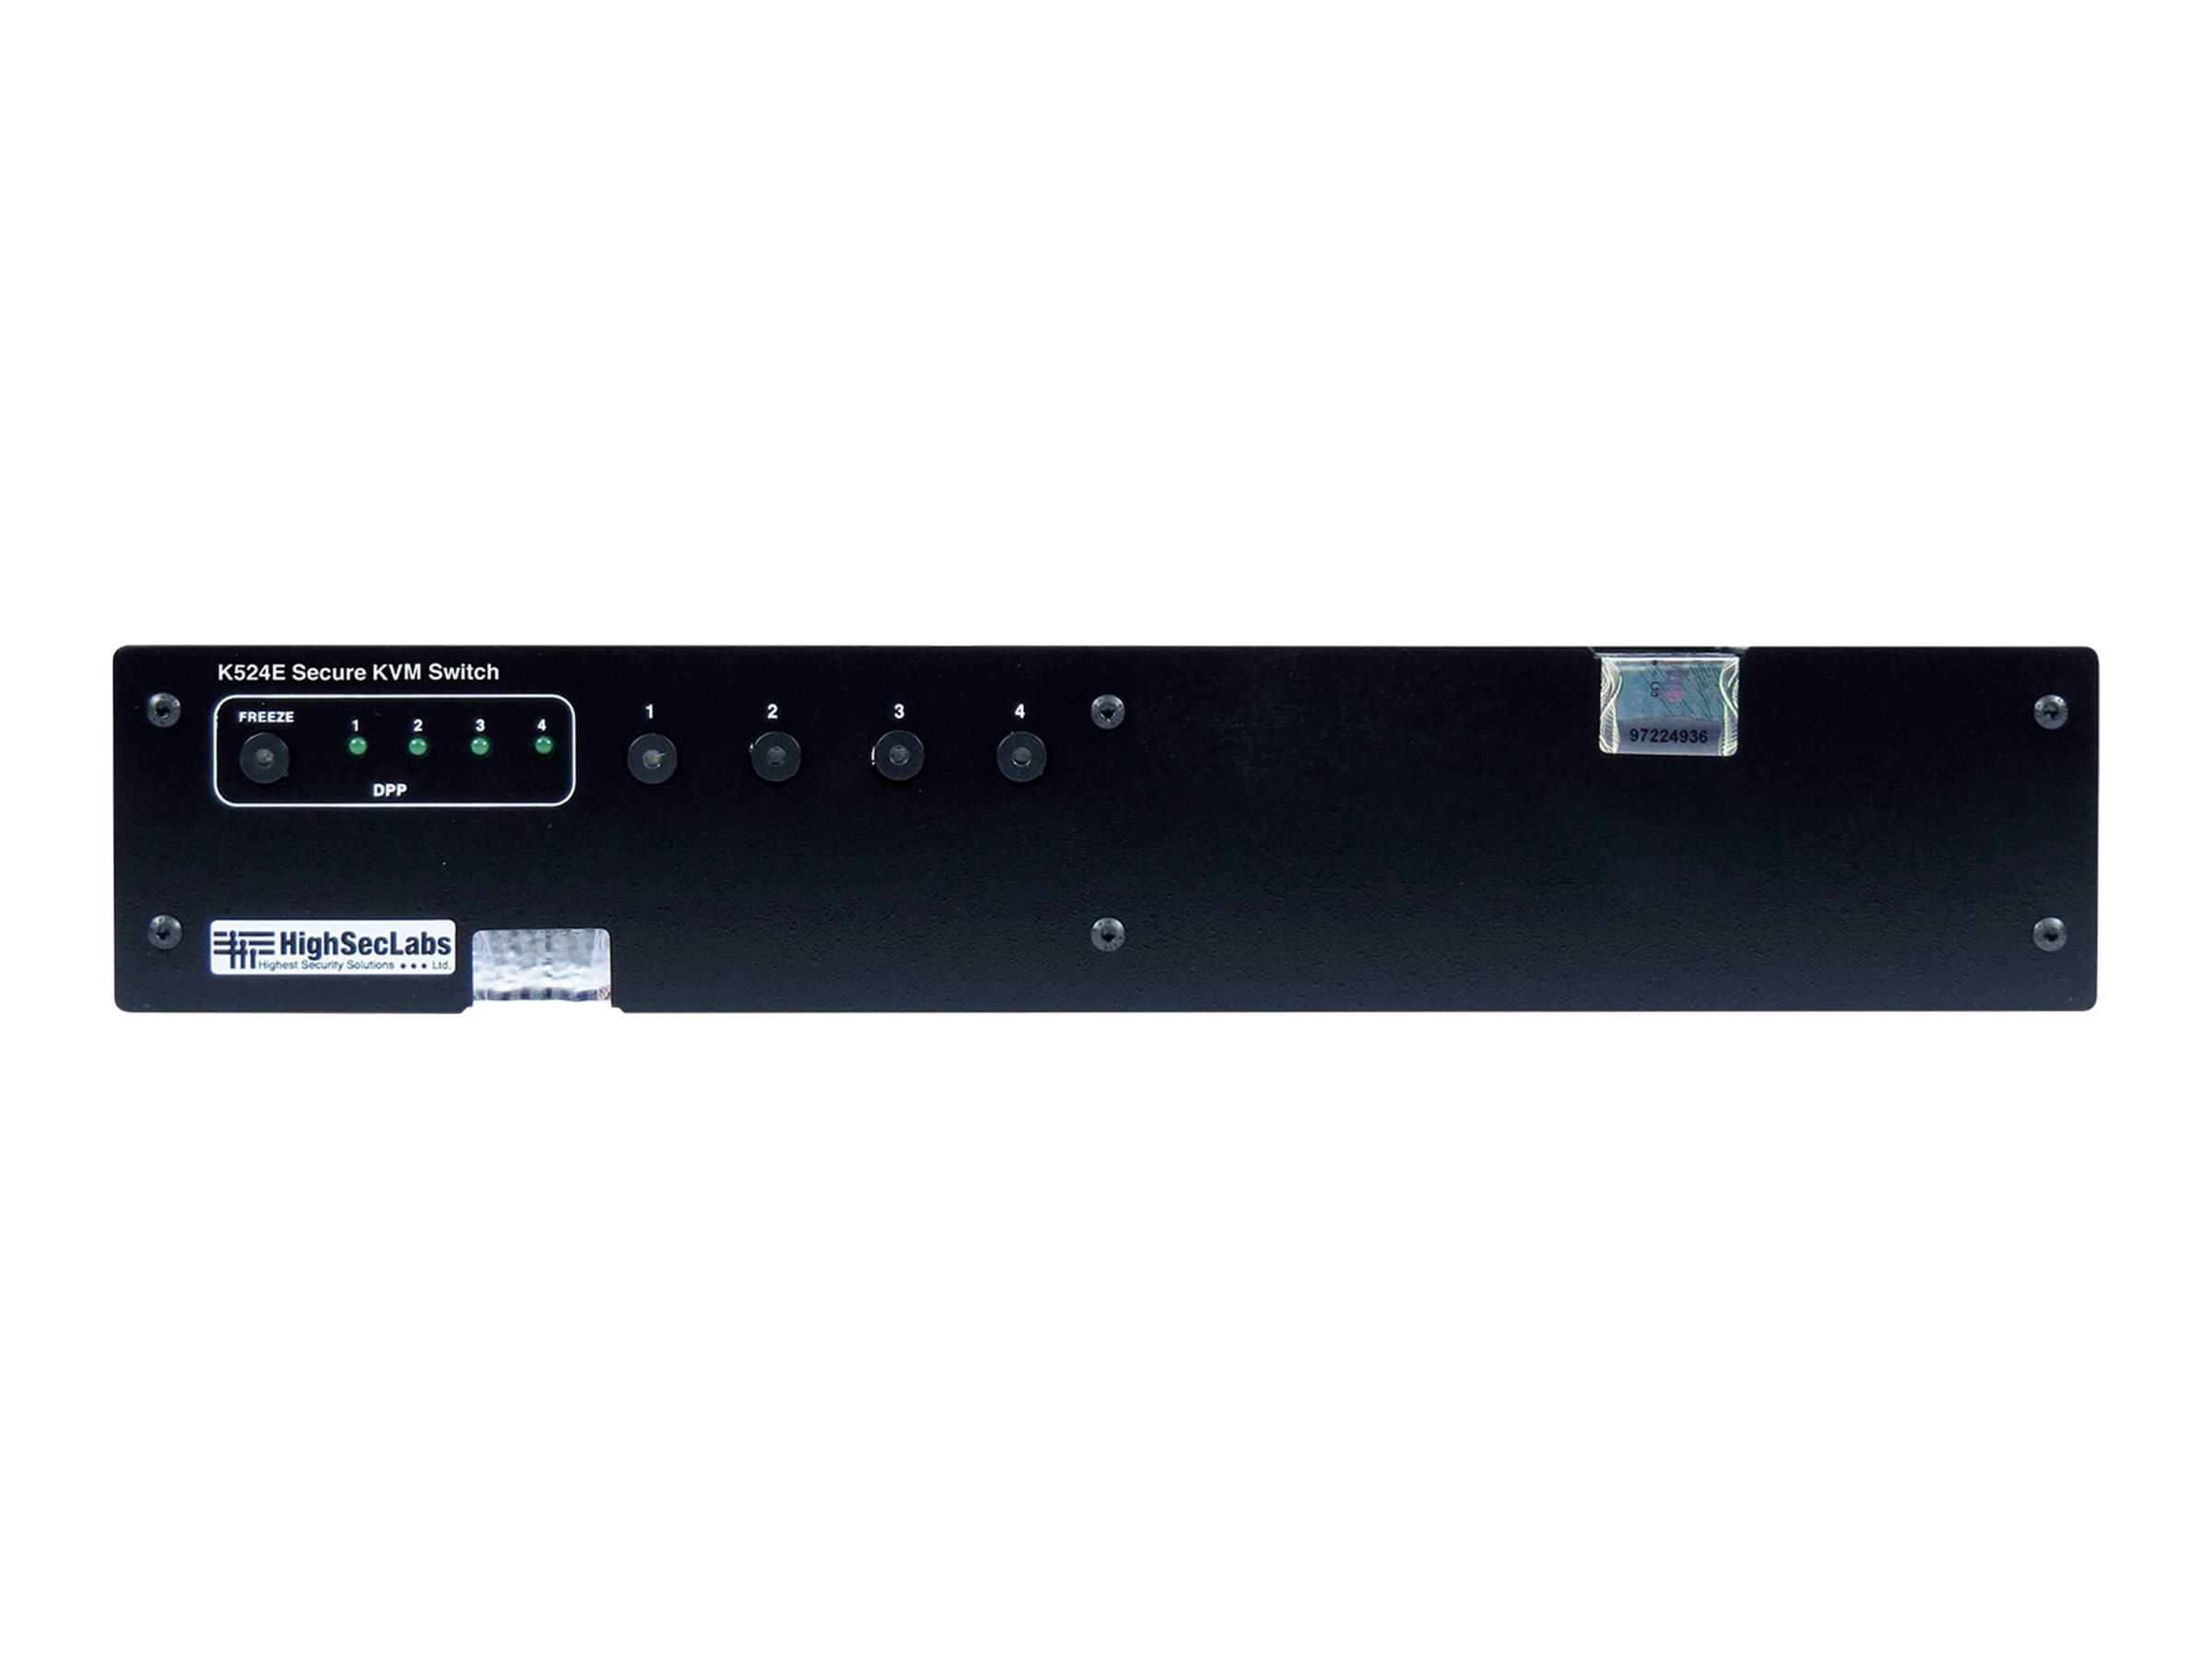 HighSecLabs Secure K524E - KVM / audio / USB switch - 4 ports